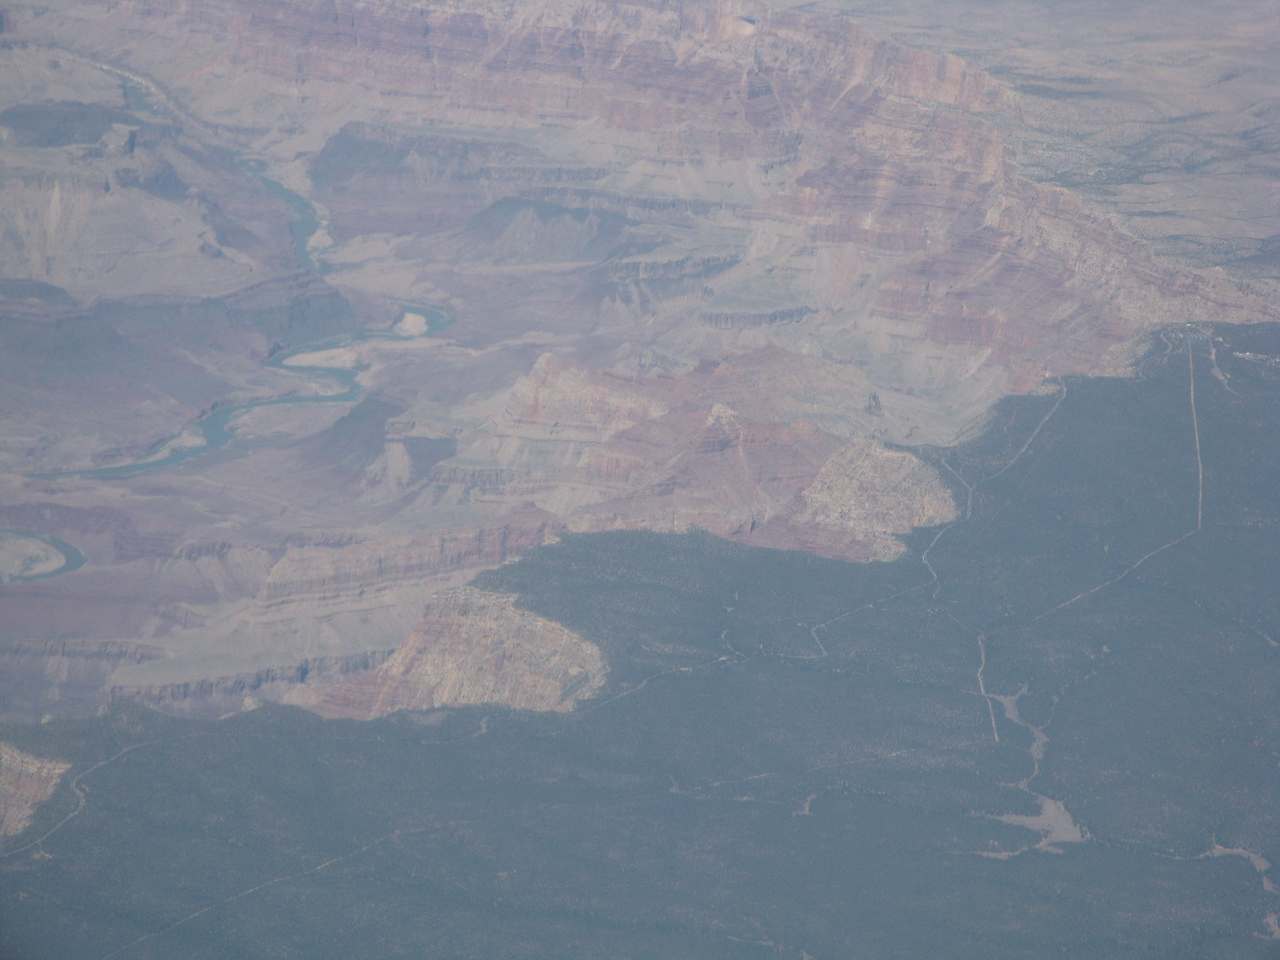 Another view of the Grand Canyon with the Desert View Watchtower on the right side of the picture.